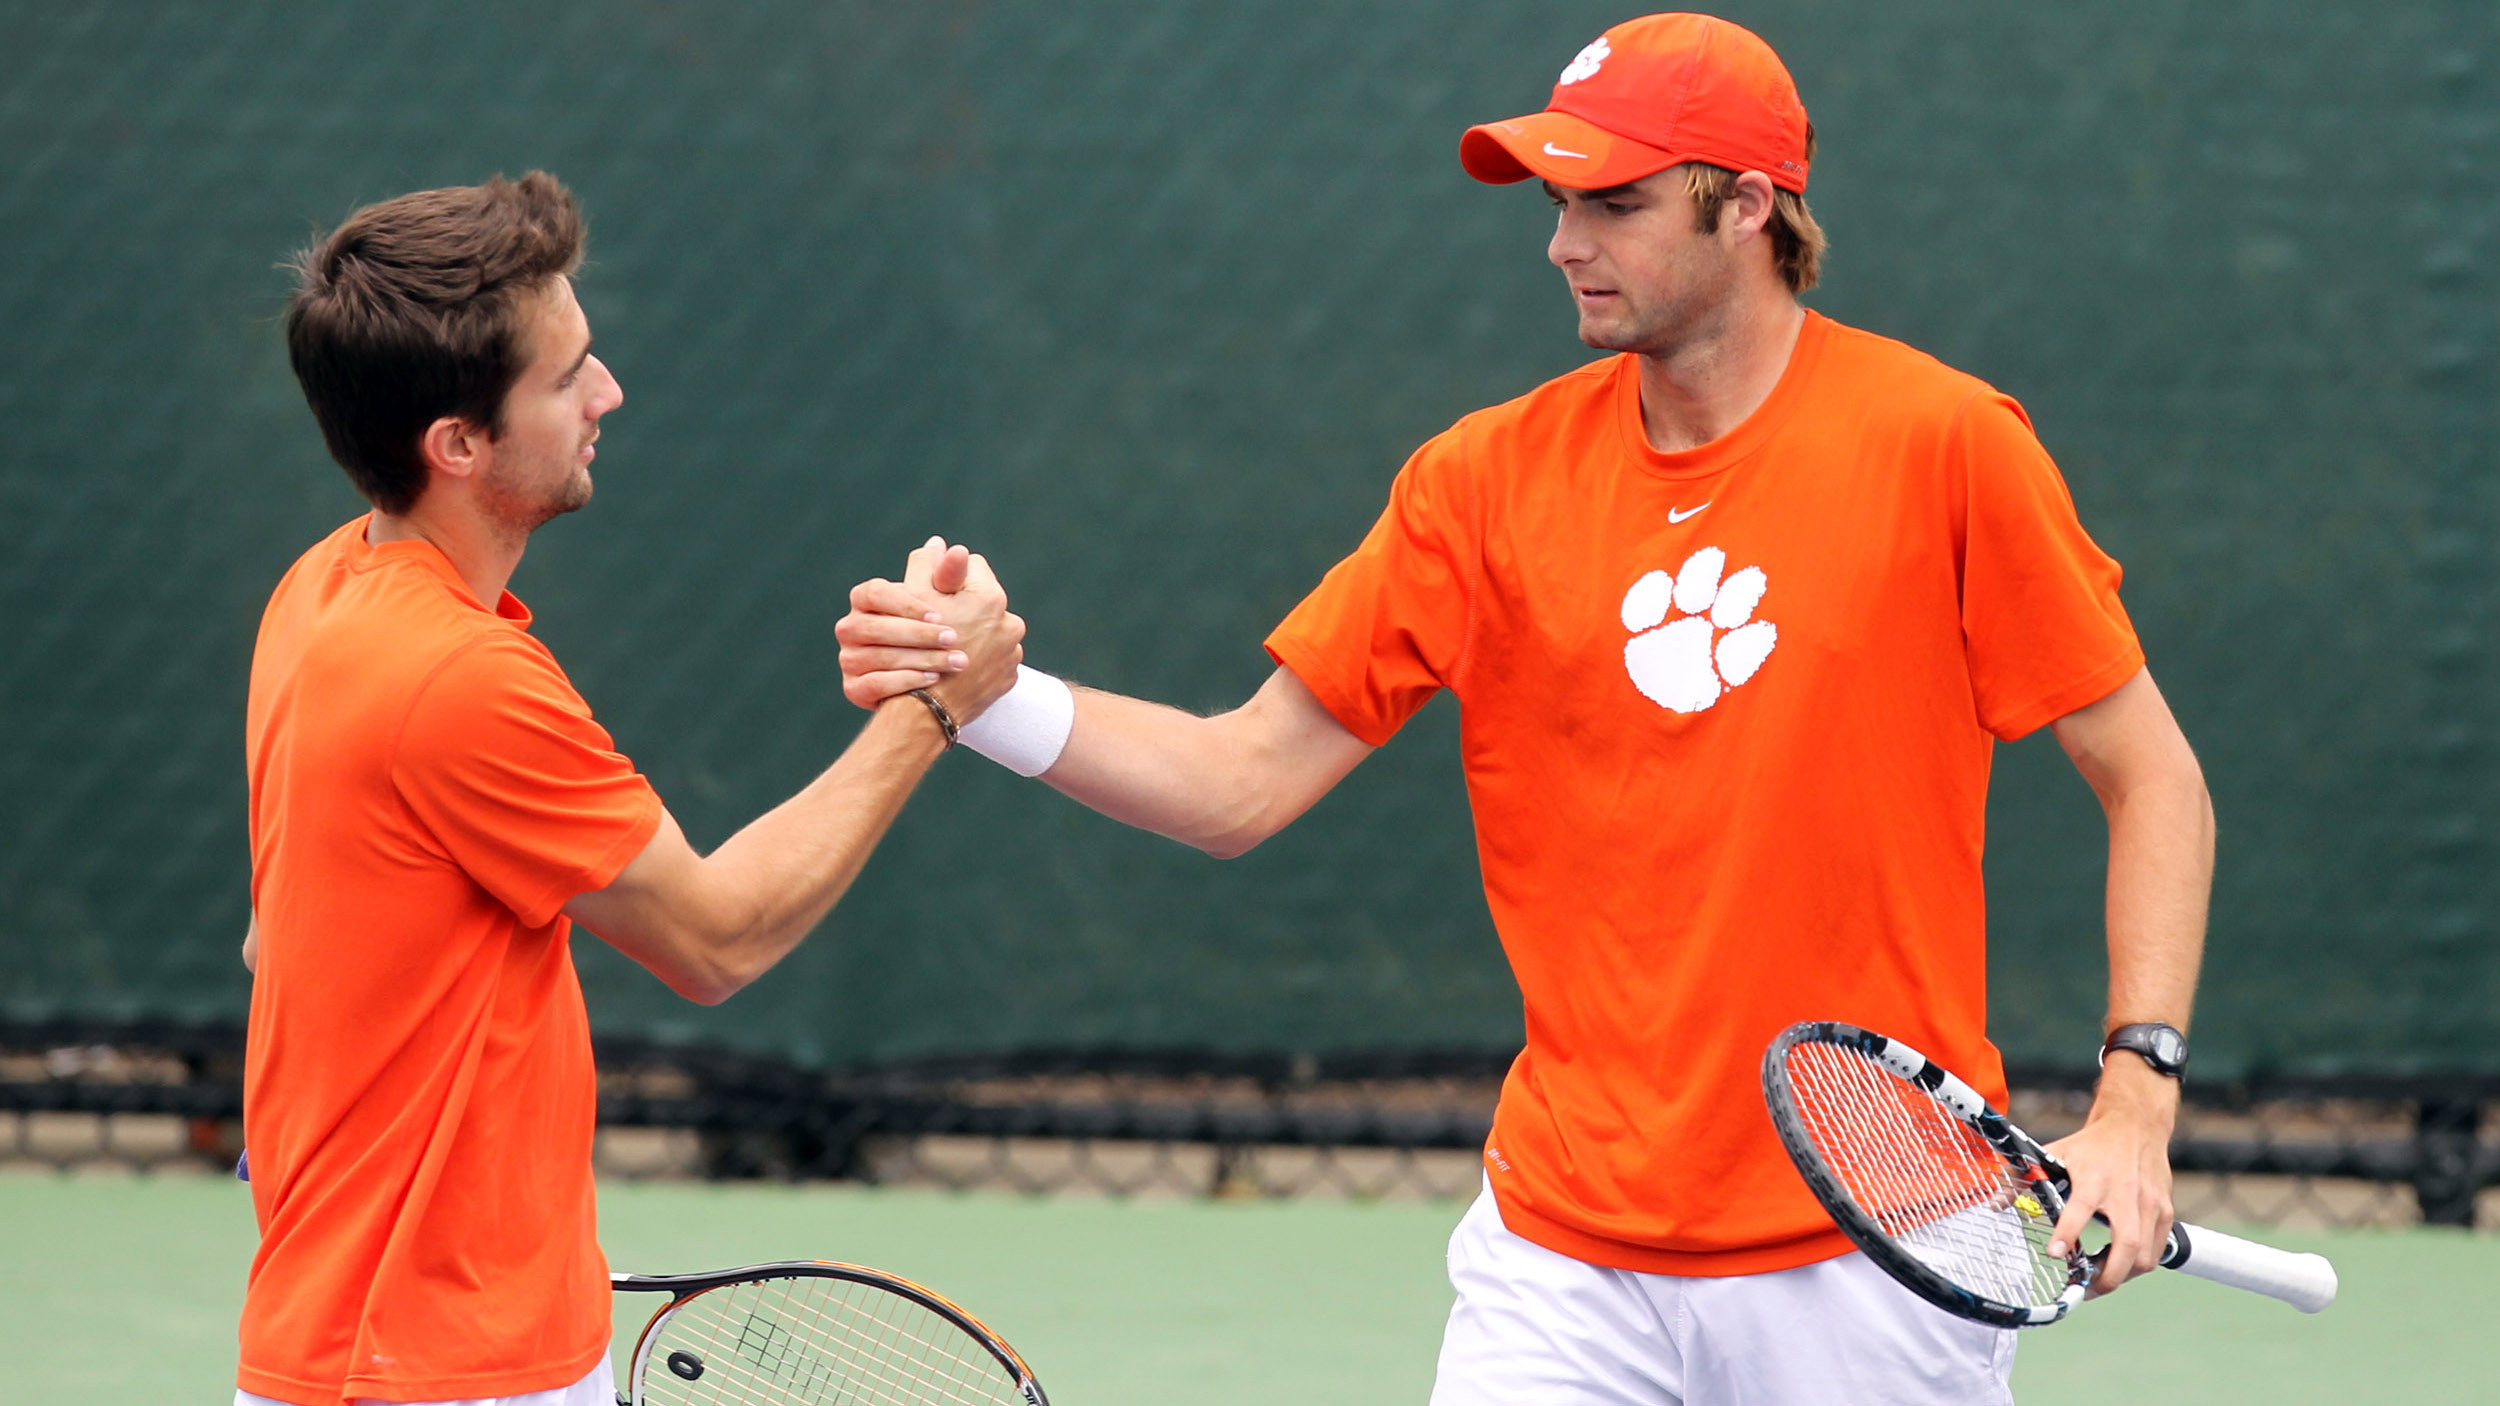 Tigers Improve to 16th in Latest ITA Rankings